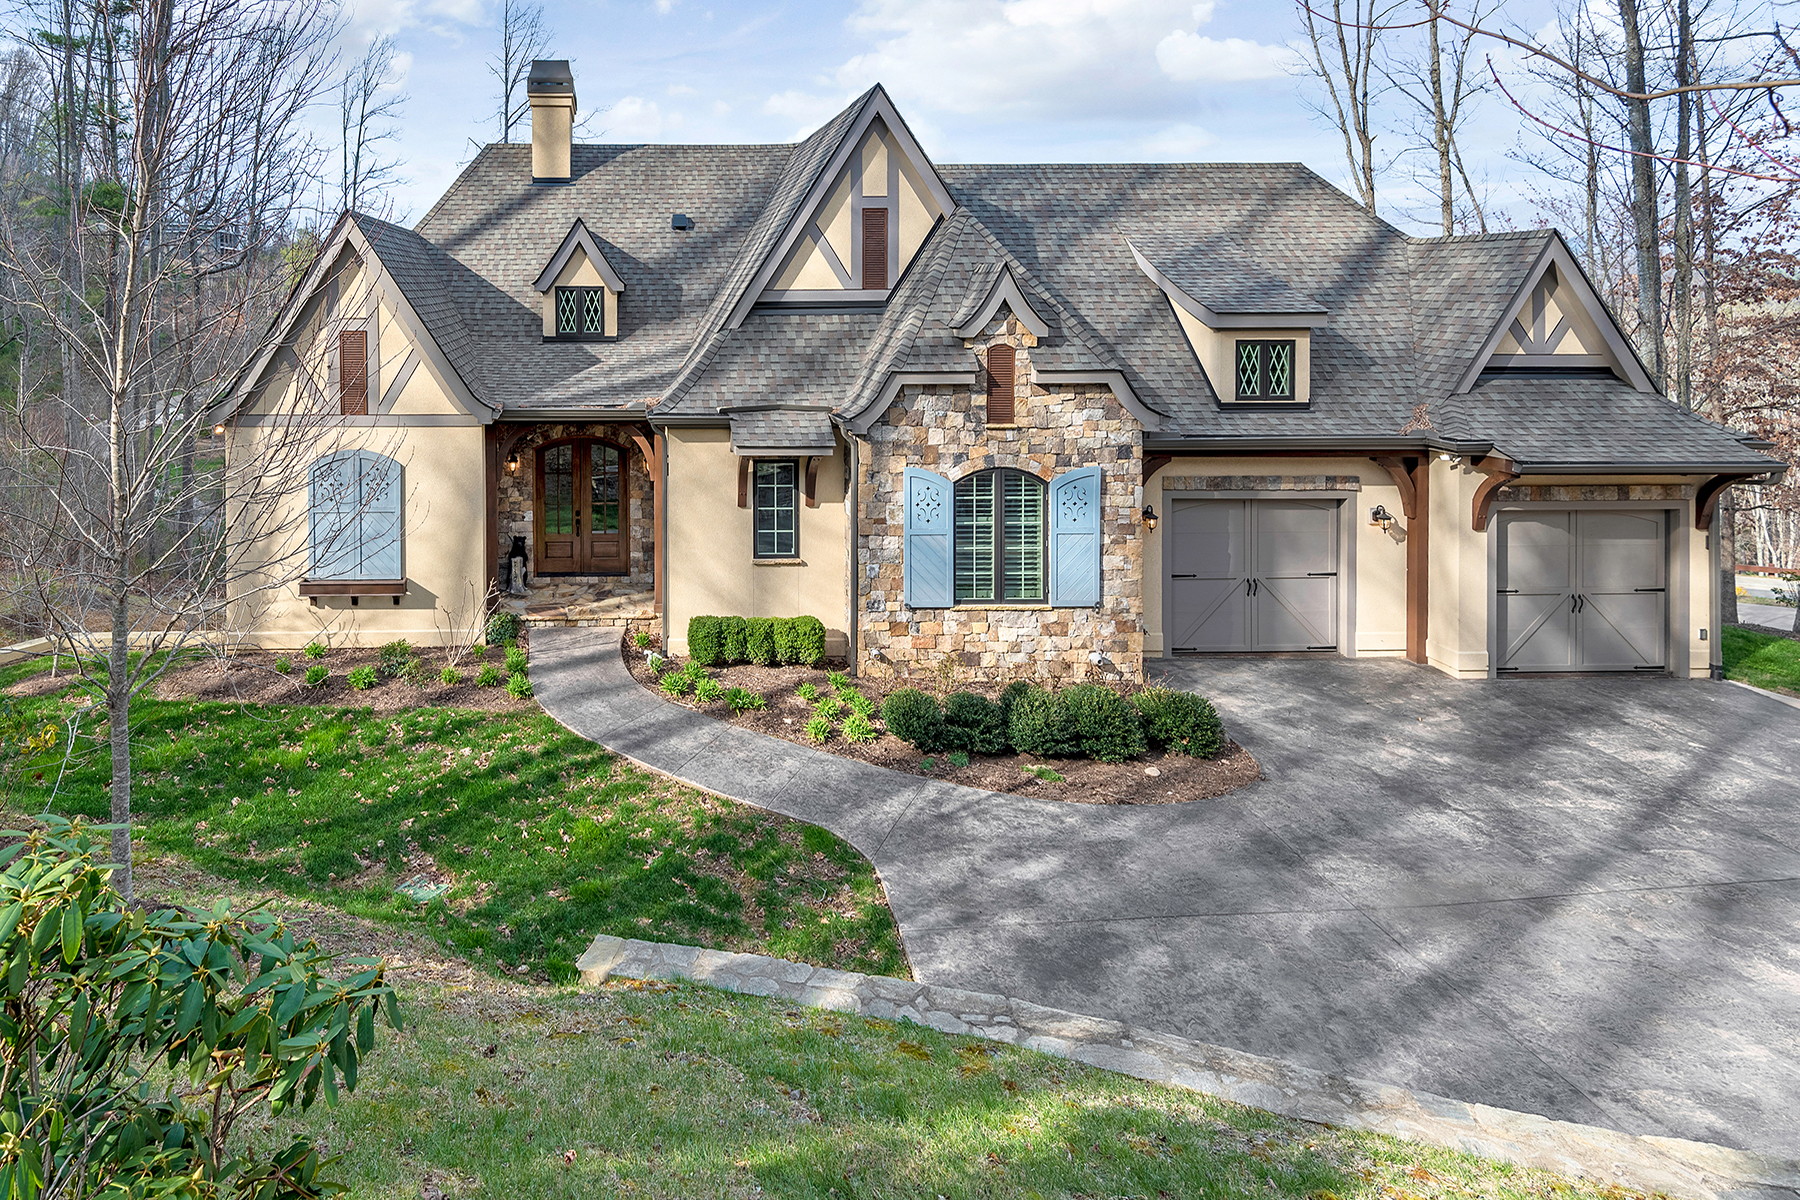 Casa Unifamiliar por un Venta en MASTERFULLY CRAFTED GREEN BUILT RESIDENCE 54 Grove Cove Dr, Asheville, Carolina Del Norte 28804 Estados Unidos